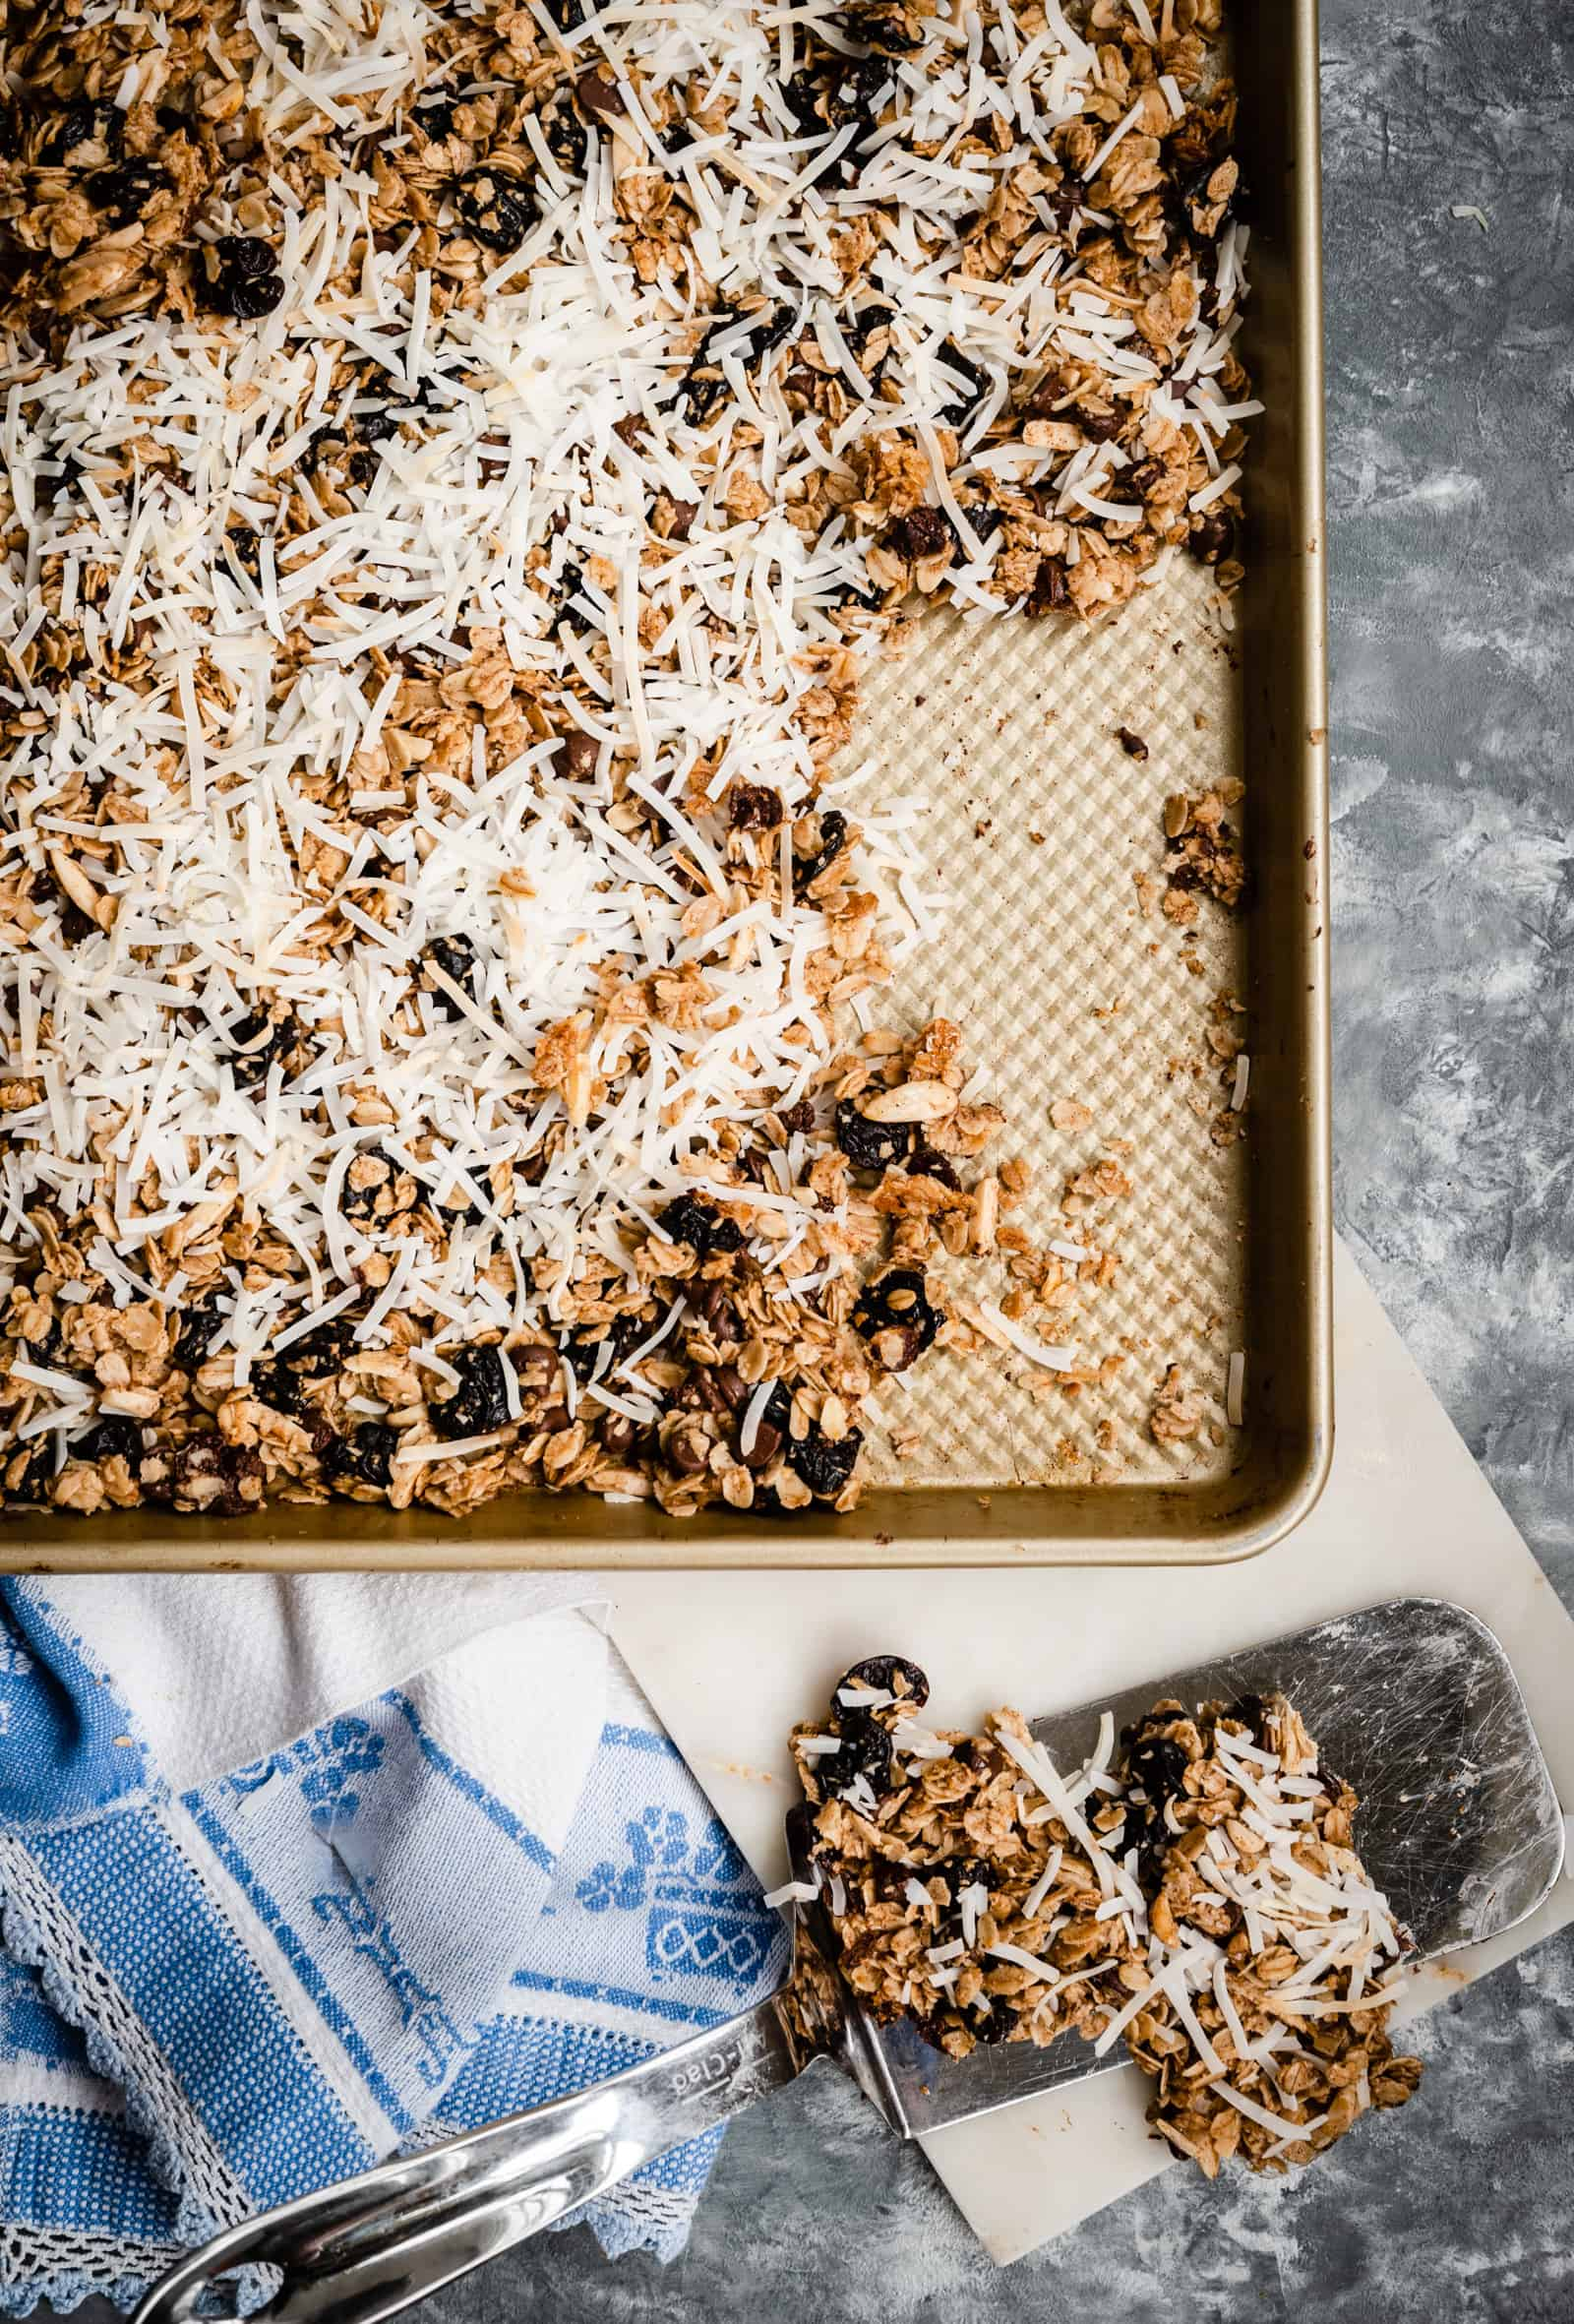 baking sheet of coconut covered baked granola and a spatula removing a section